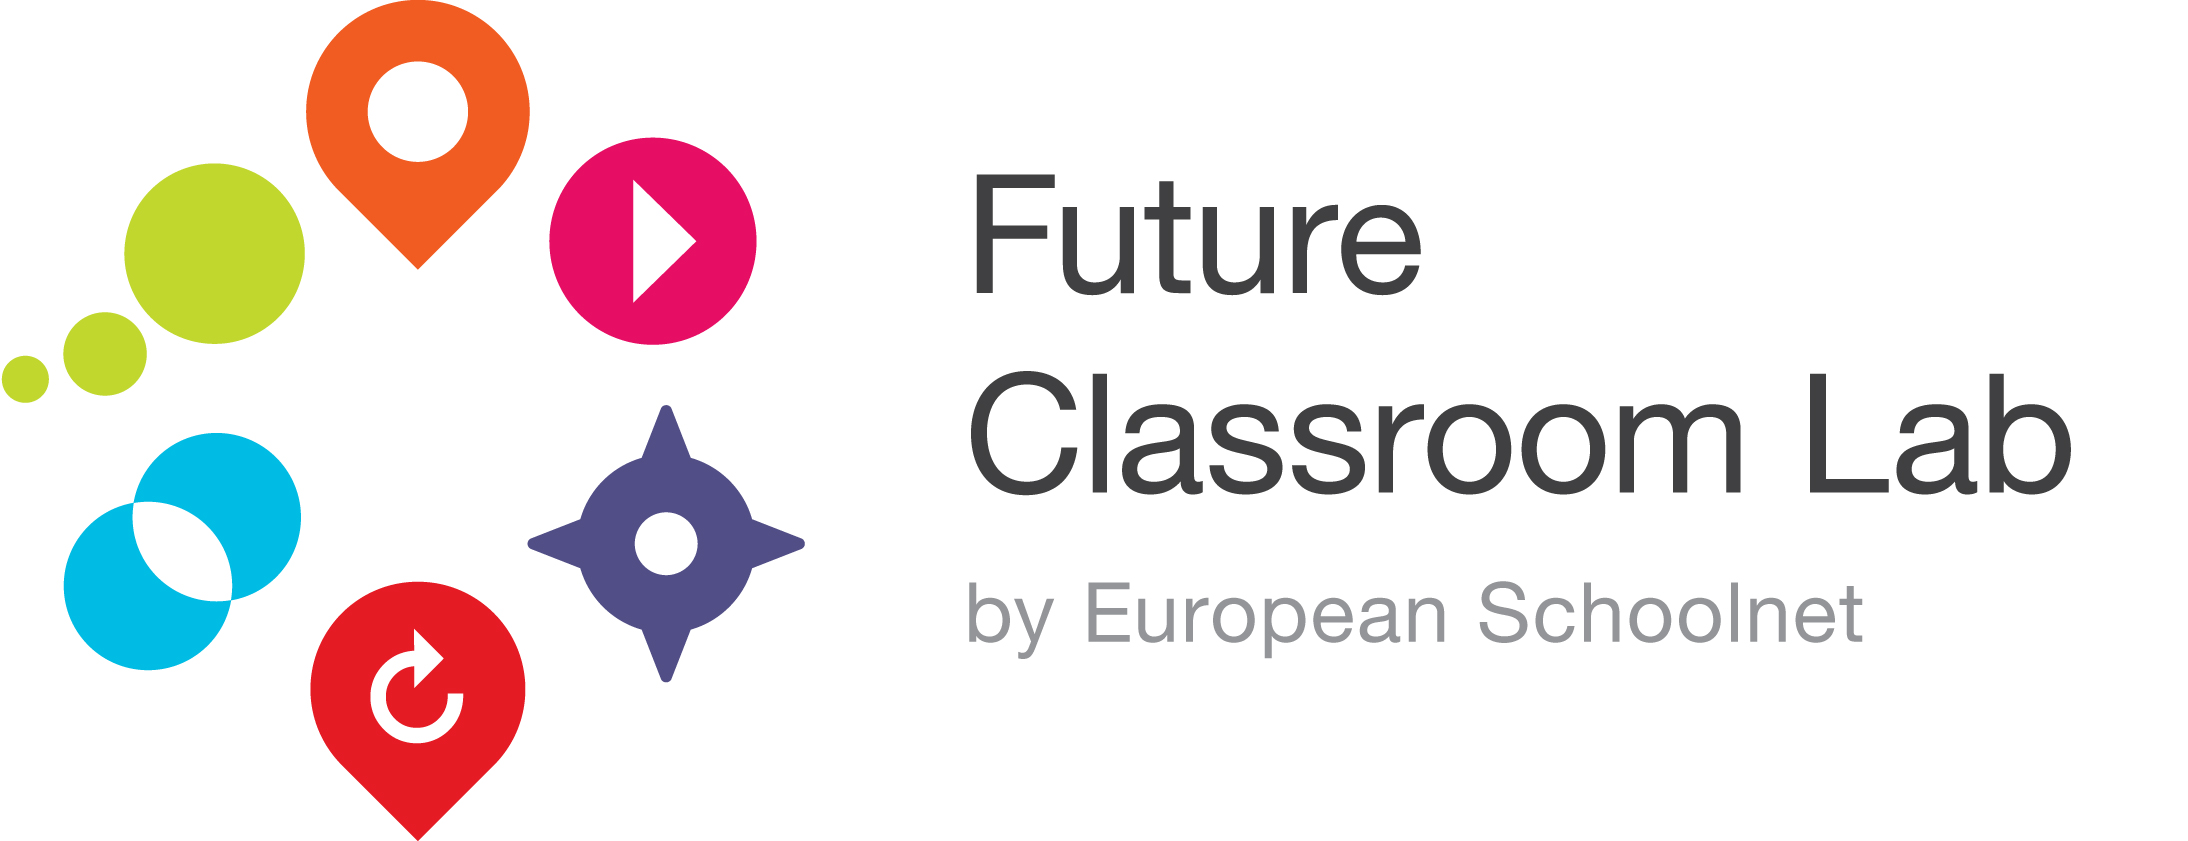 Register for this intensive five-day course at the Future Classroom Lab